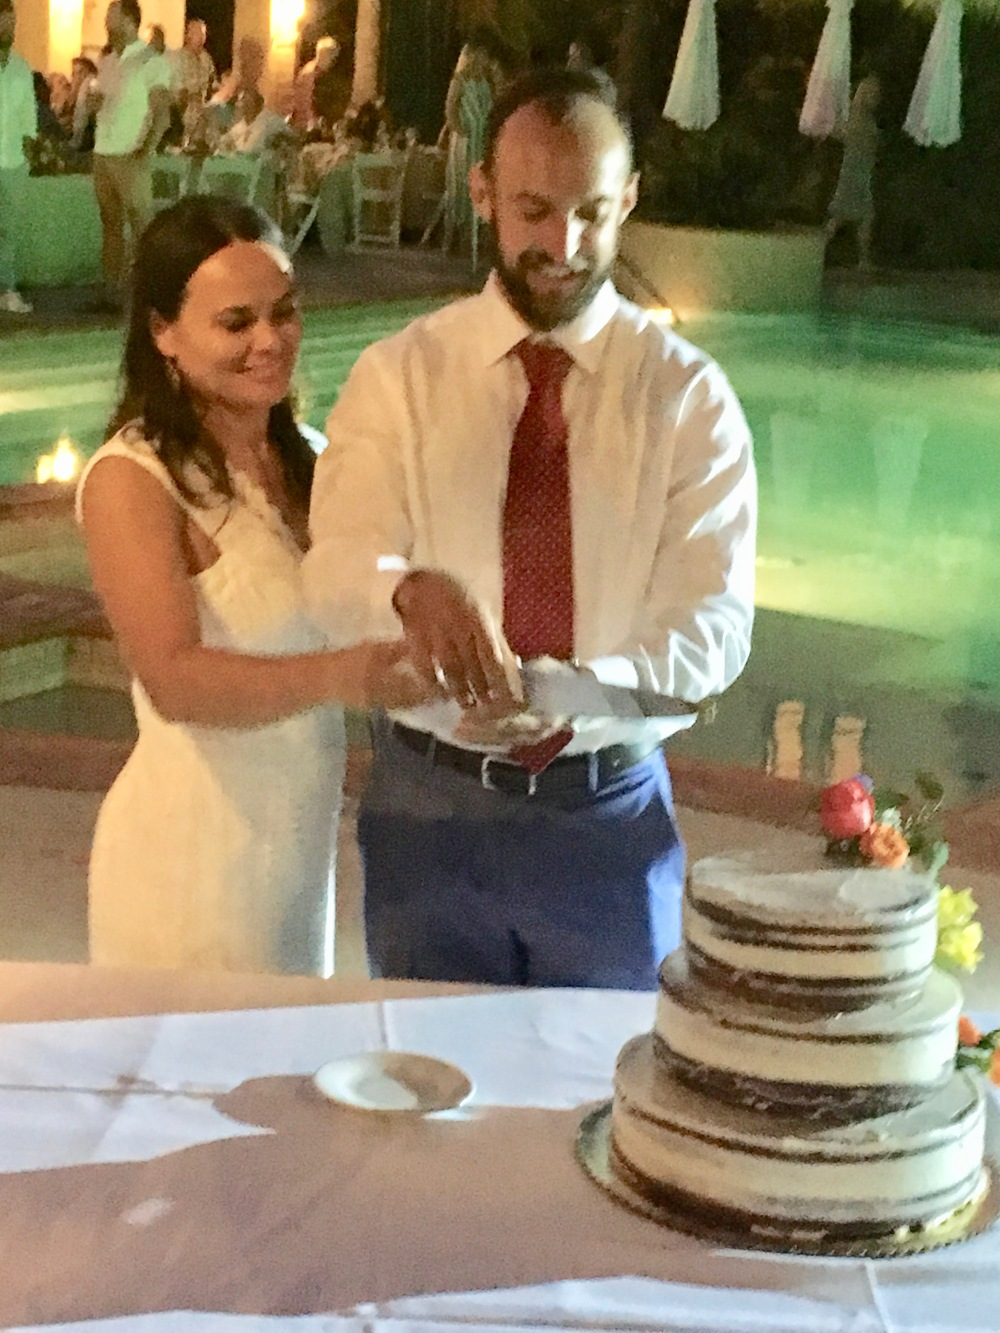 Ron and Liz Cutting the Cake (Smiling)